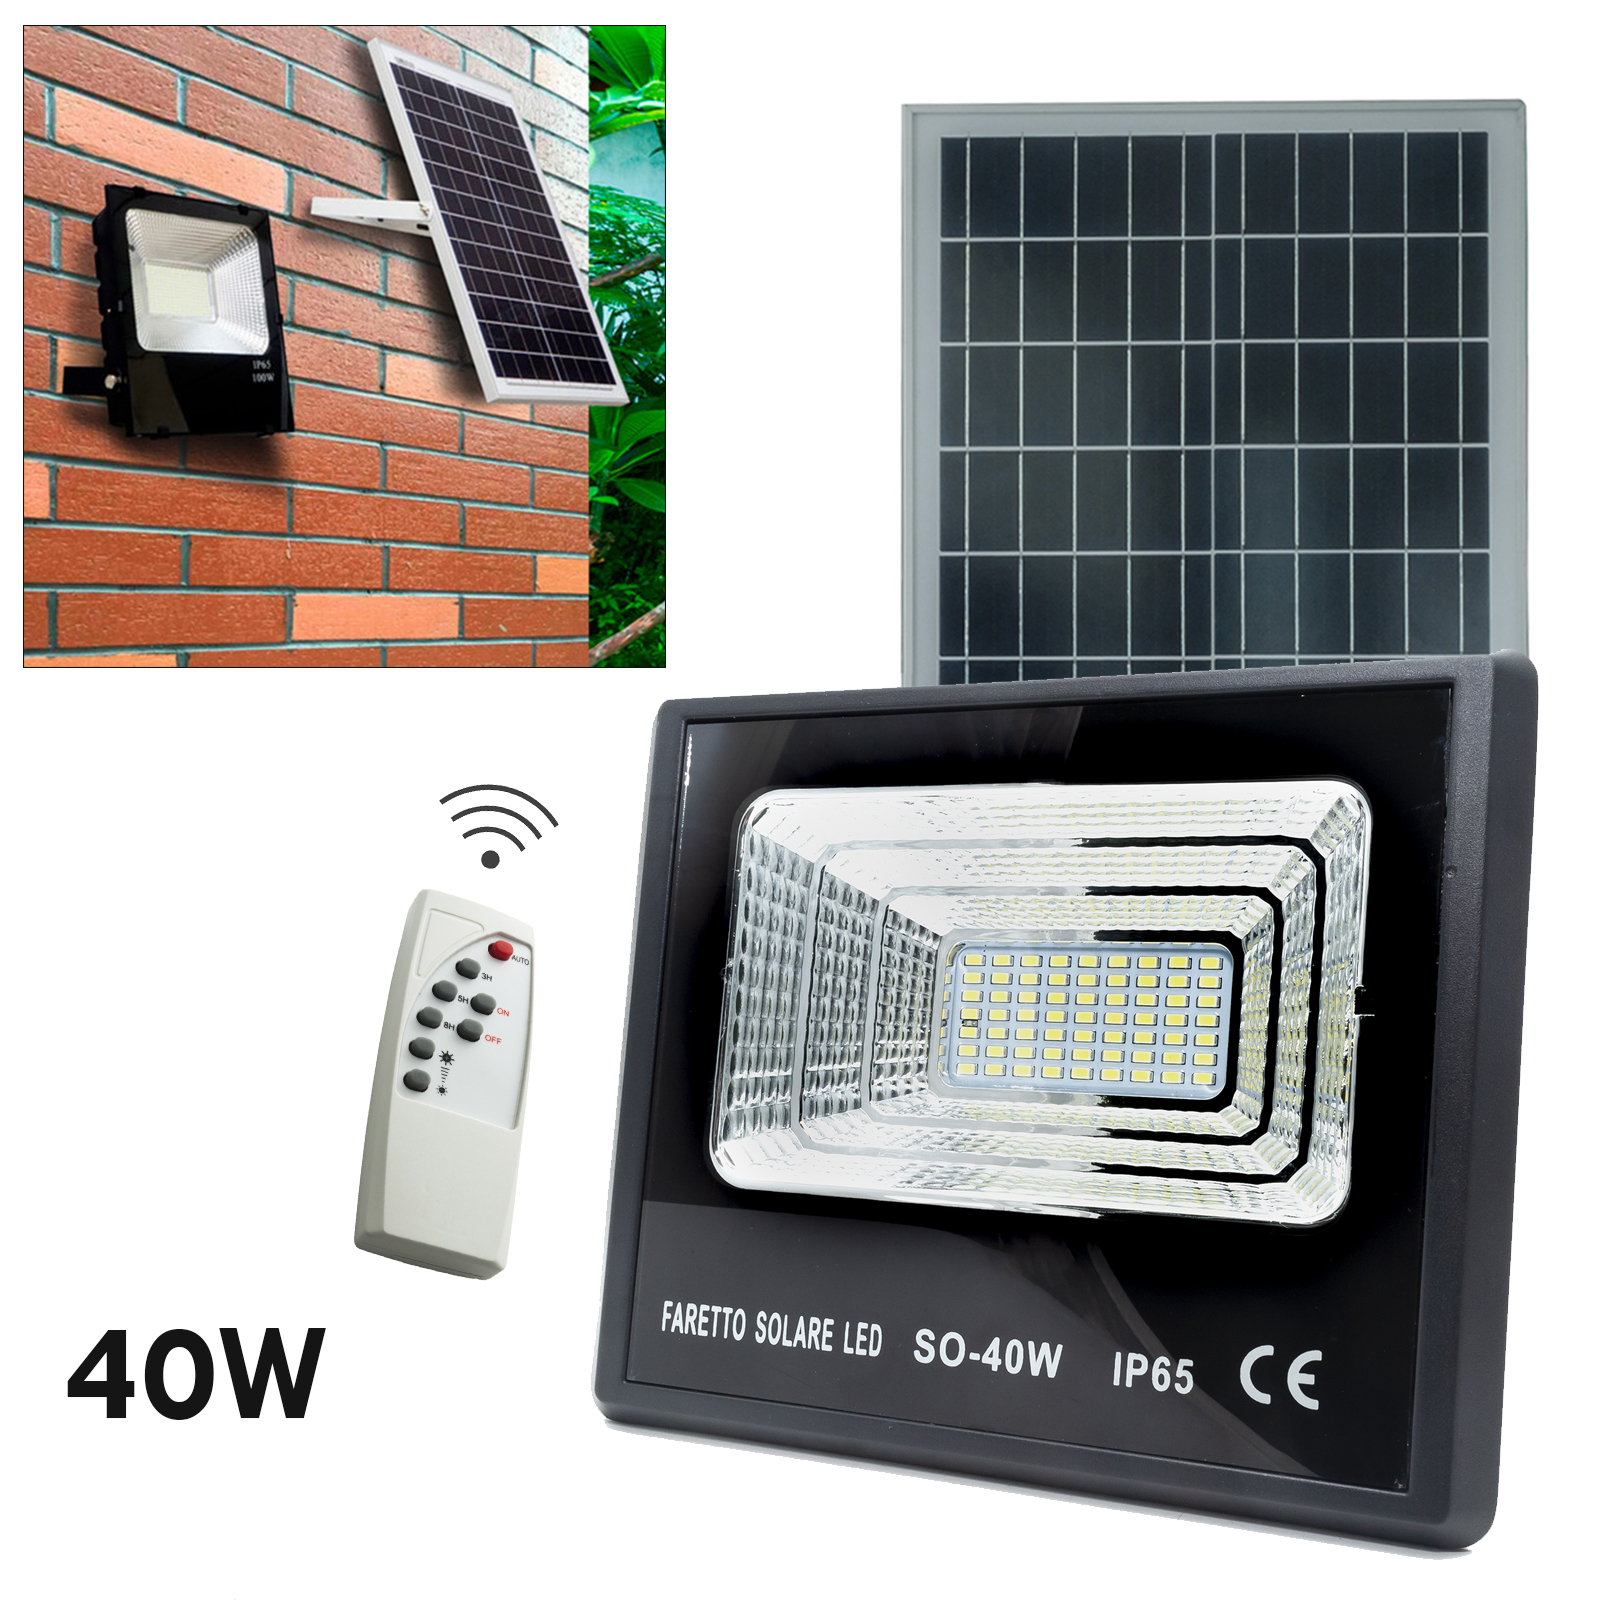 LED spotlight twilight 40W solar light outdoors garden 6000K IP65